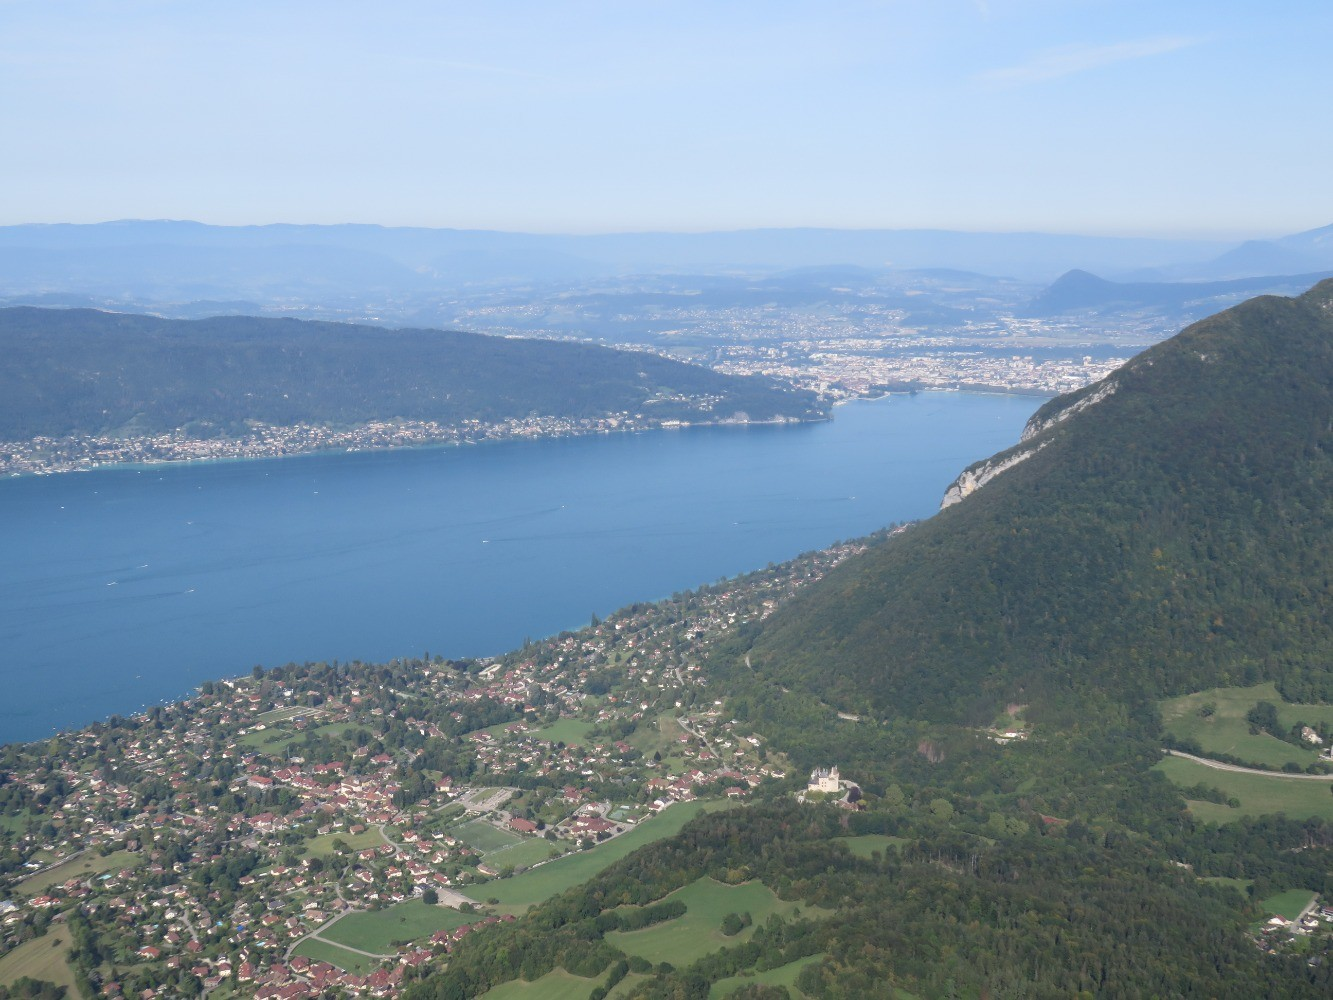 Vers Annecy